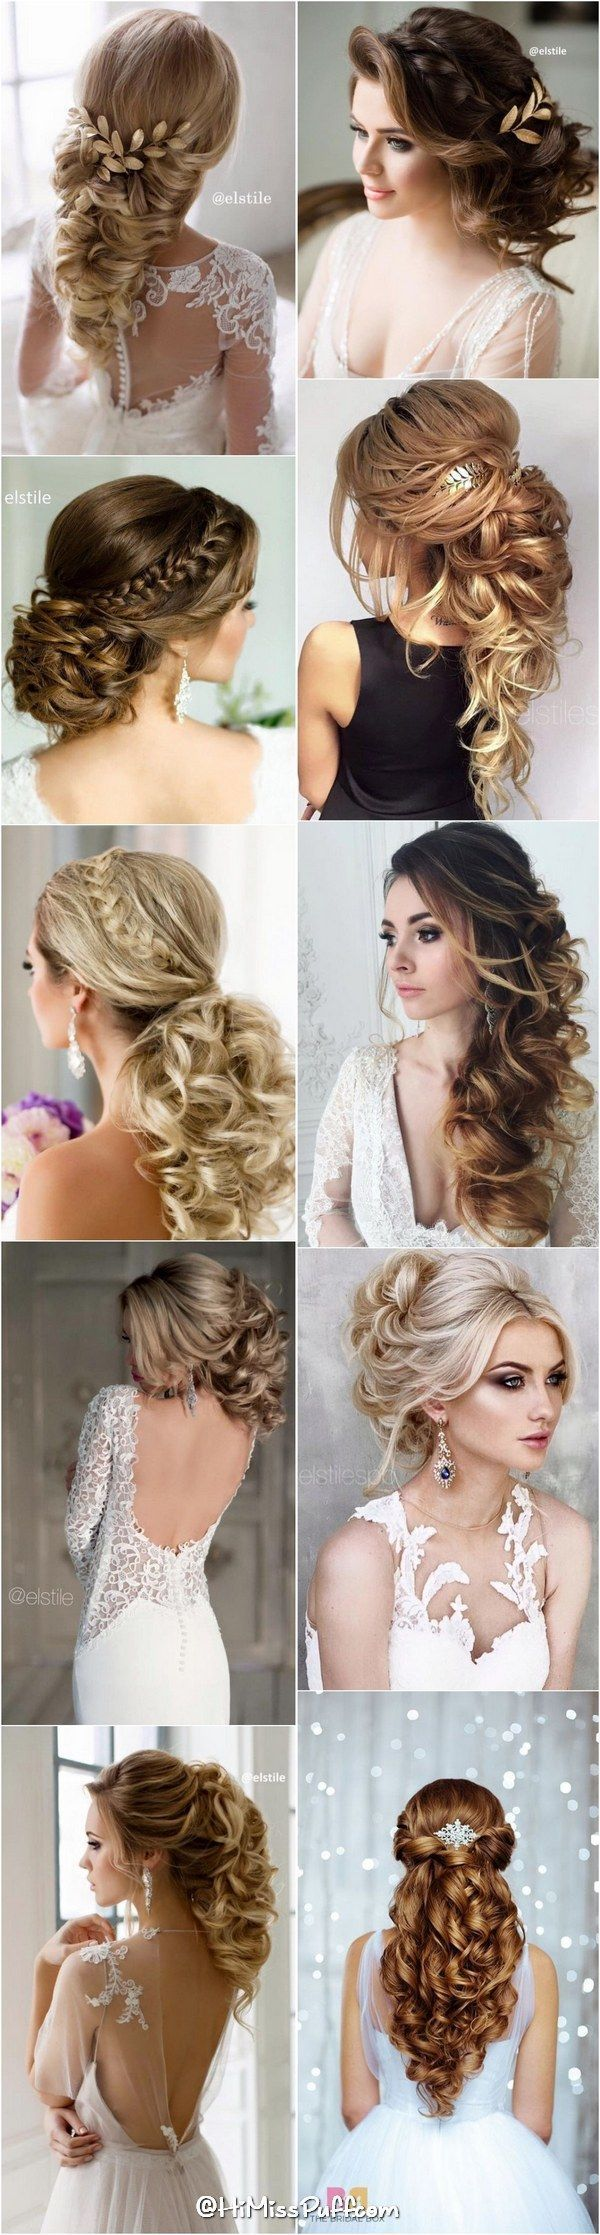 Bridal Wedding Hairstyles for Long Hair That Will Inspire / www.himisspuff.co...